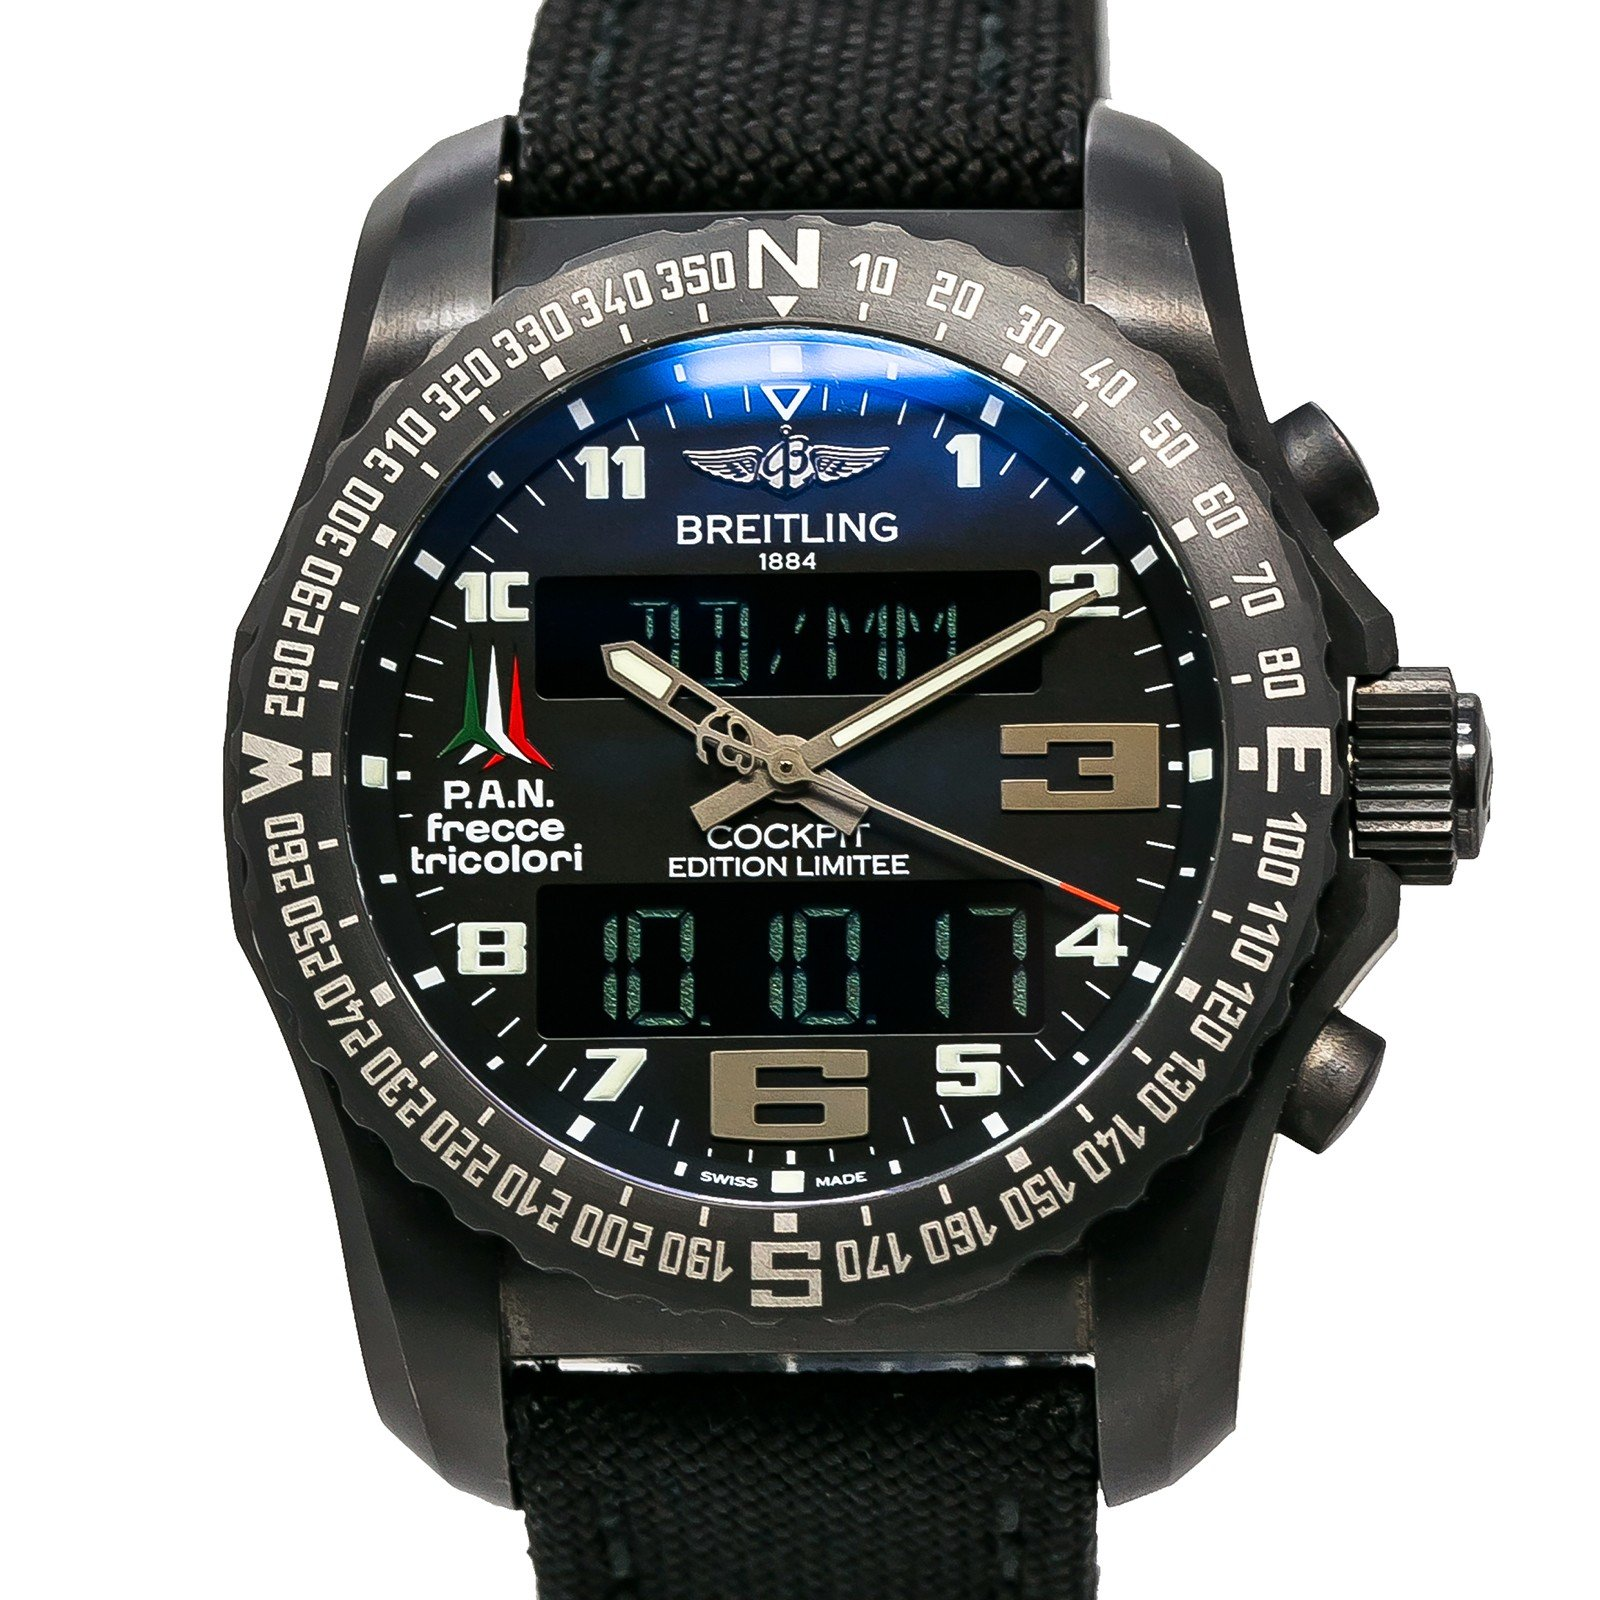 Breitling Cockpit swiss-quartz mens Watch VB5010 (Certified Pre-owned) by Breitling (Image #4)